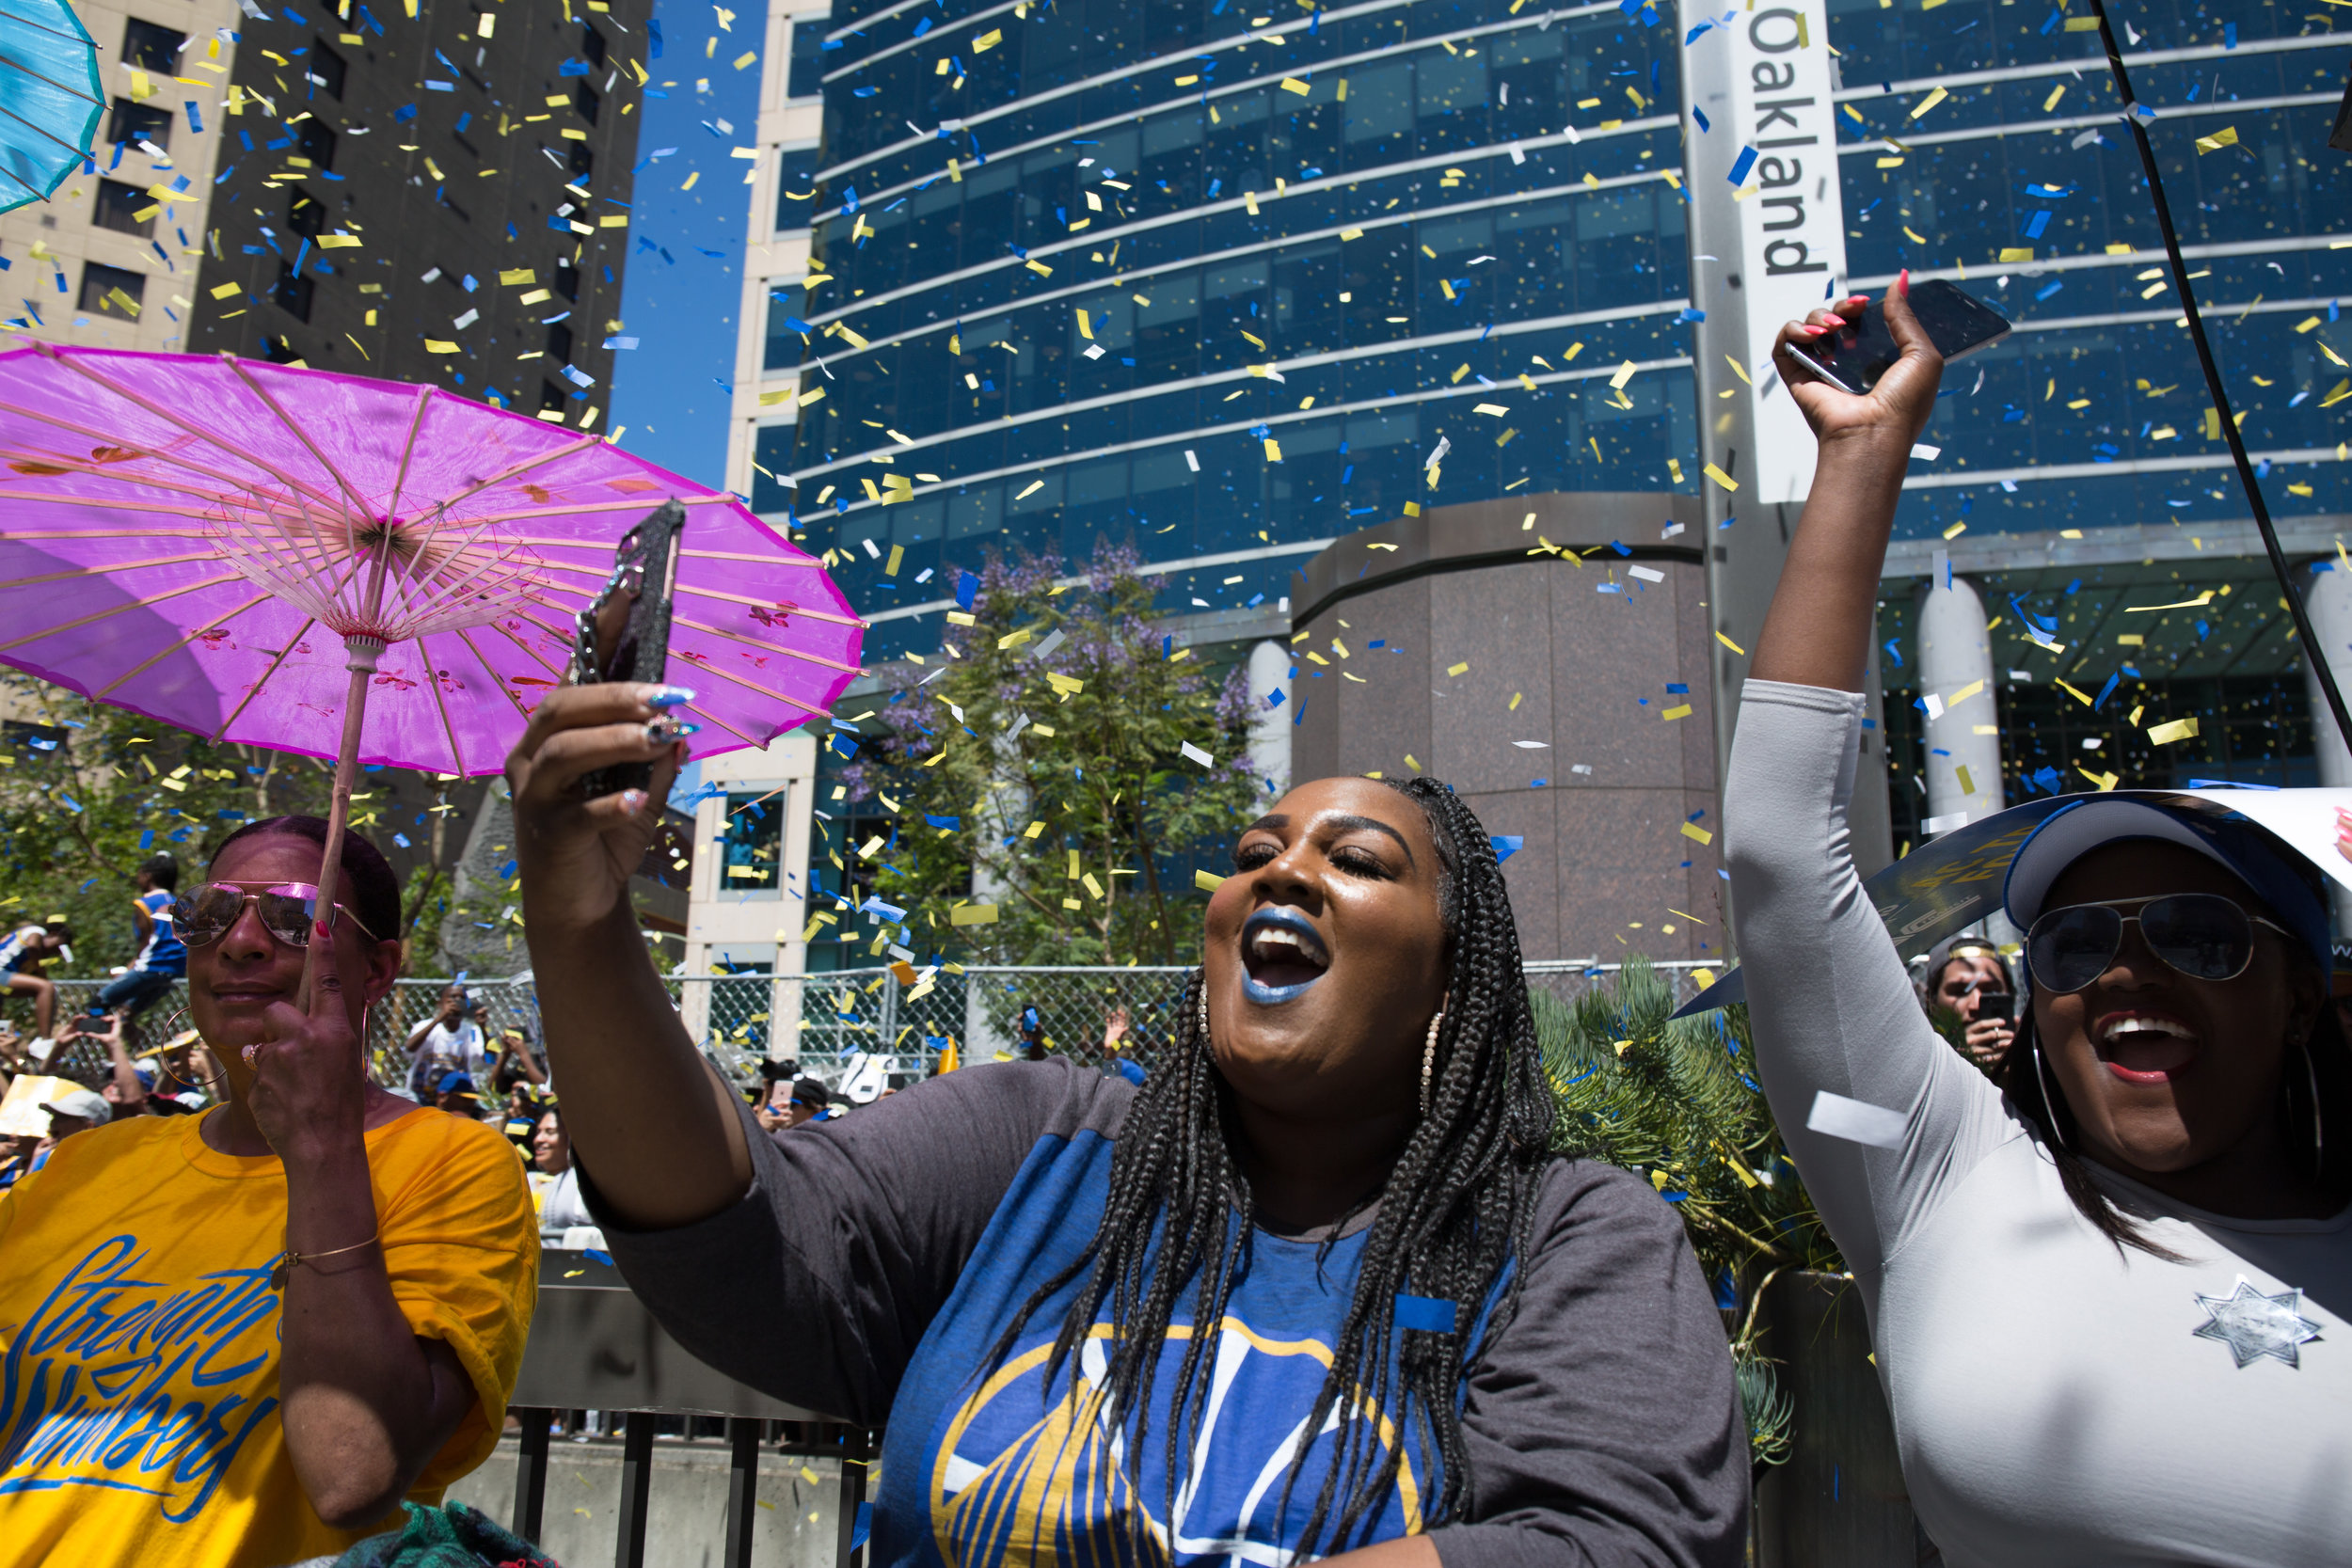 Amelia Johnson, 27, center, cheers as a tour bus carrying Steph Curry, his wife, Ayesha, and their daughter, Riley, passes by at the 2018 Warriors Championship Parade in Oakland, CA on June 12, 2018.